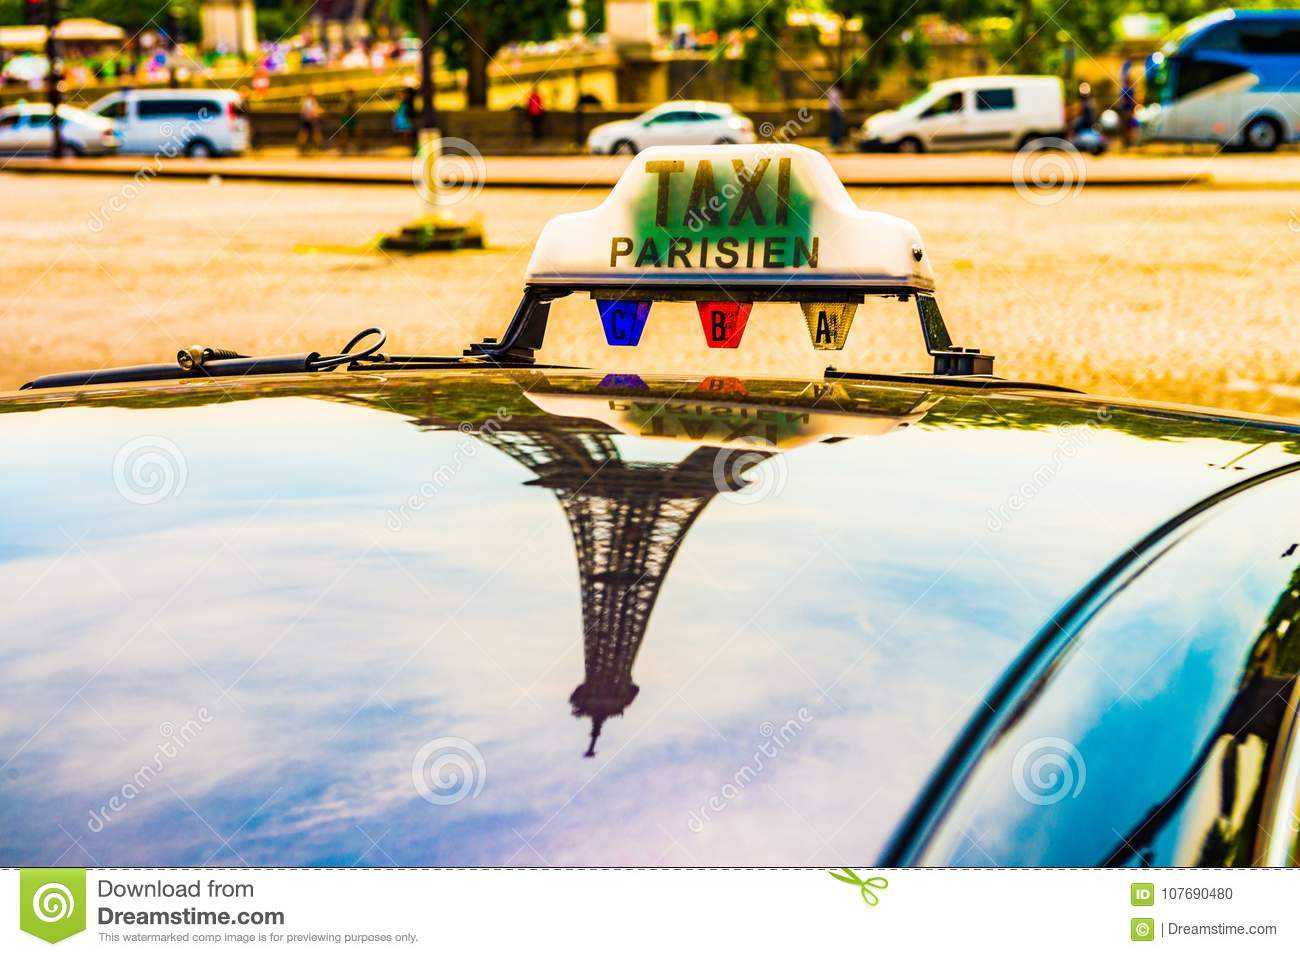 Parisian taxi roof showing the eiffel tower as a reflection.